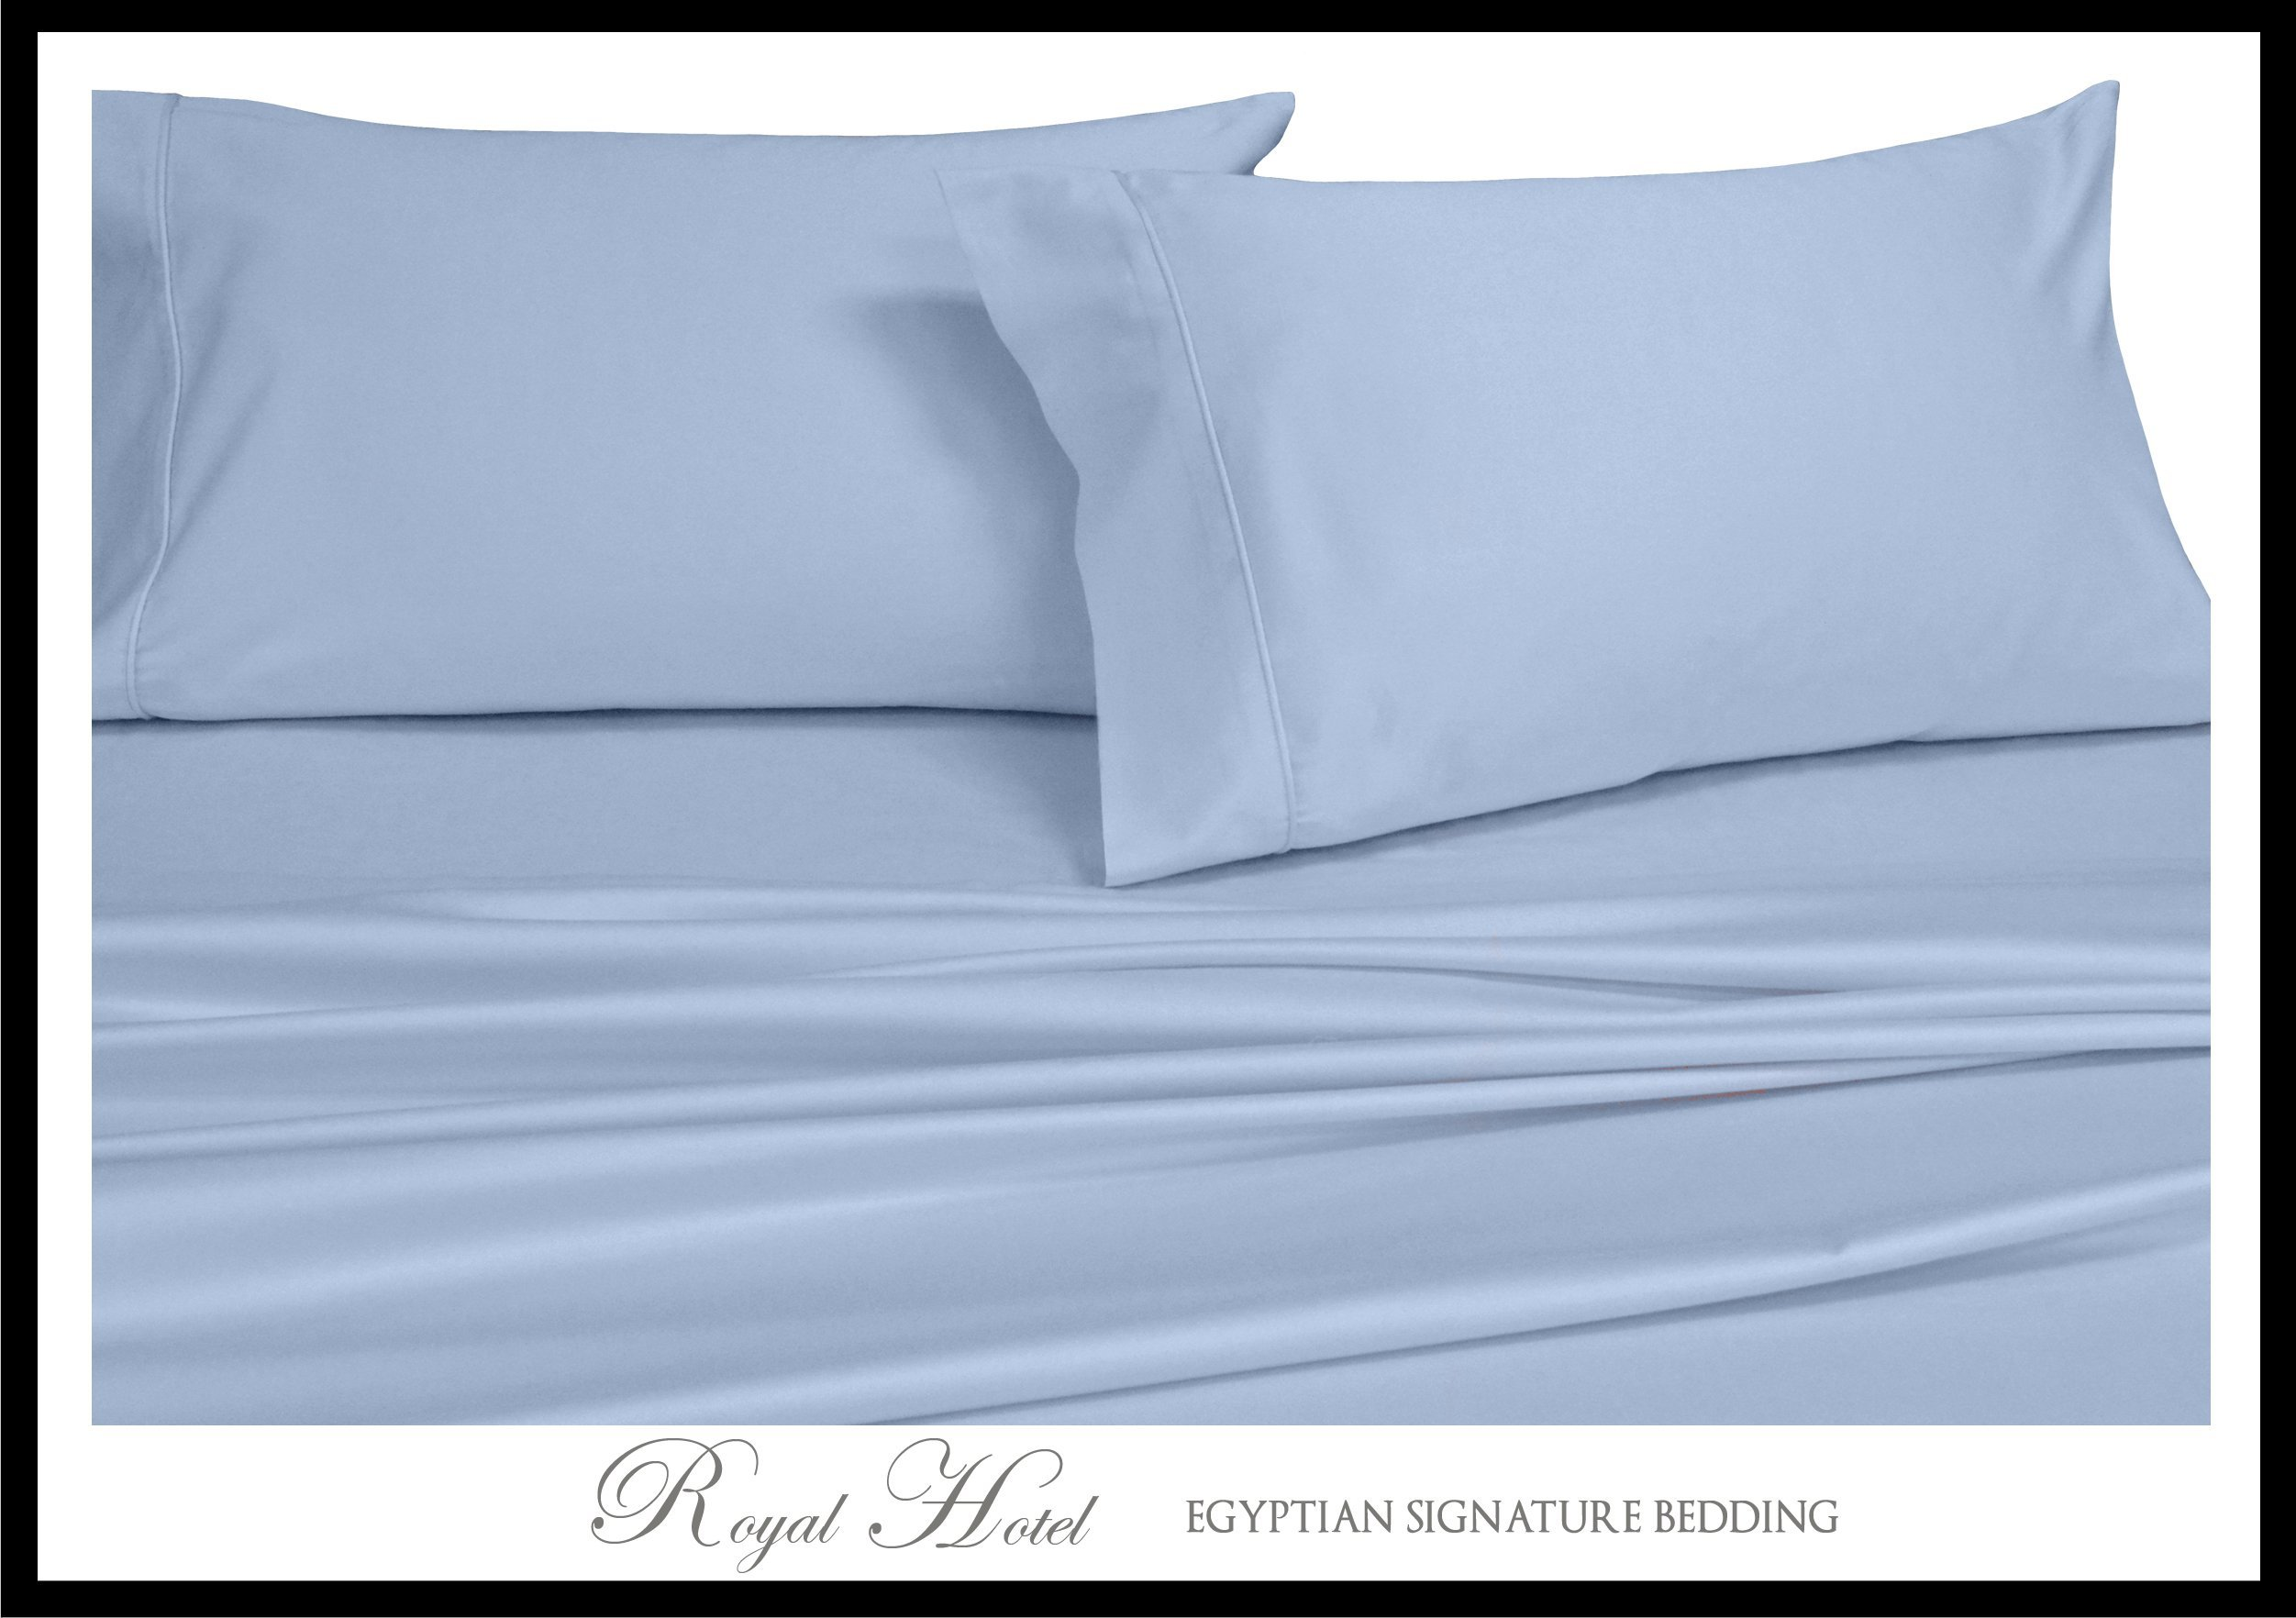 Top-Split-King: Adjustable King Bed Sheets 4PC Solid Blue 100% Cotton 600-Thread-Count, Deep Pocket